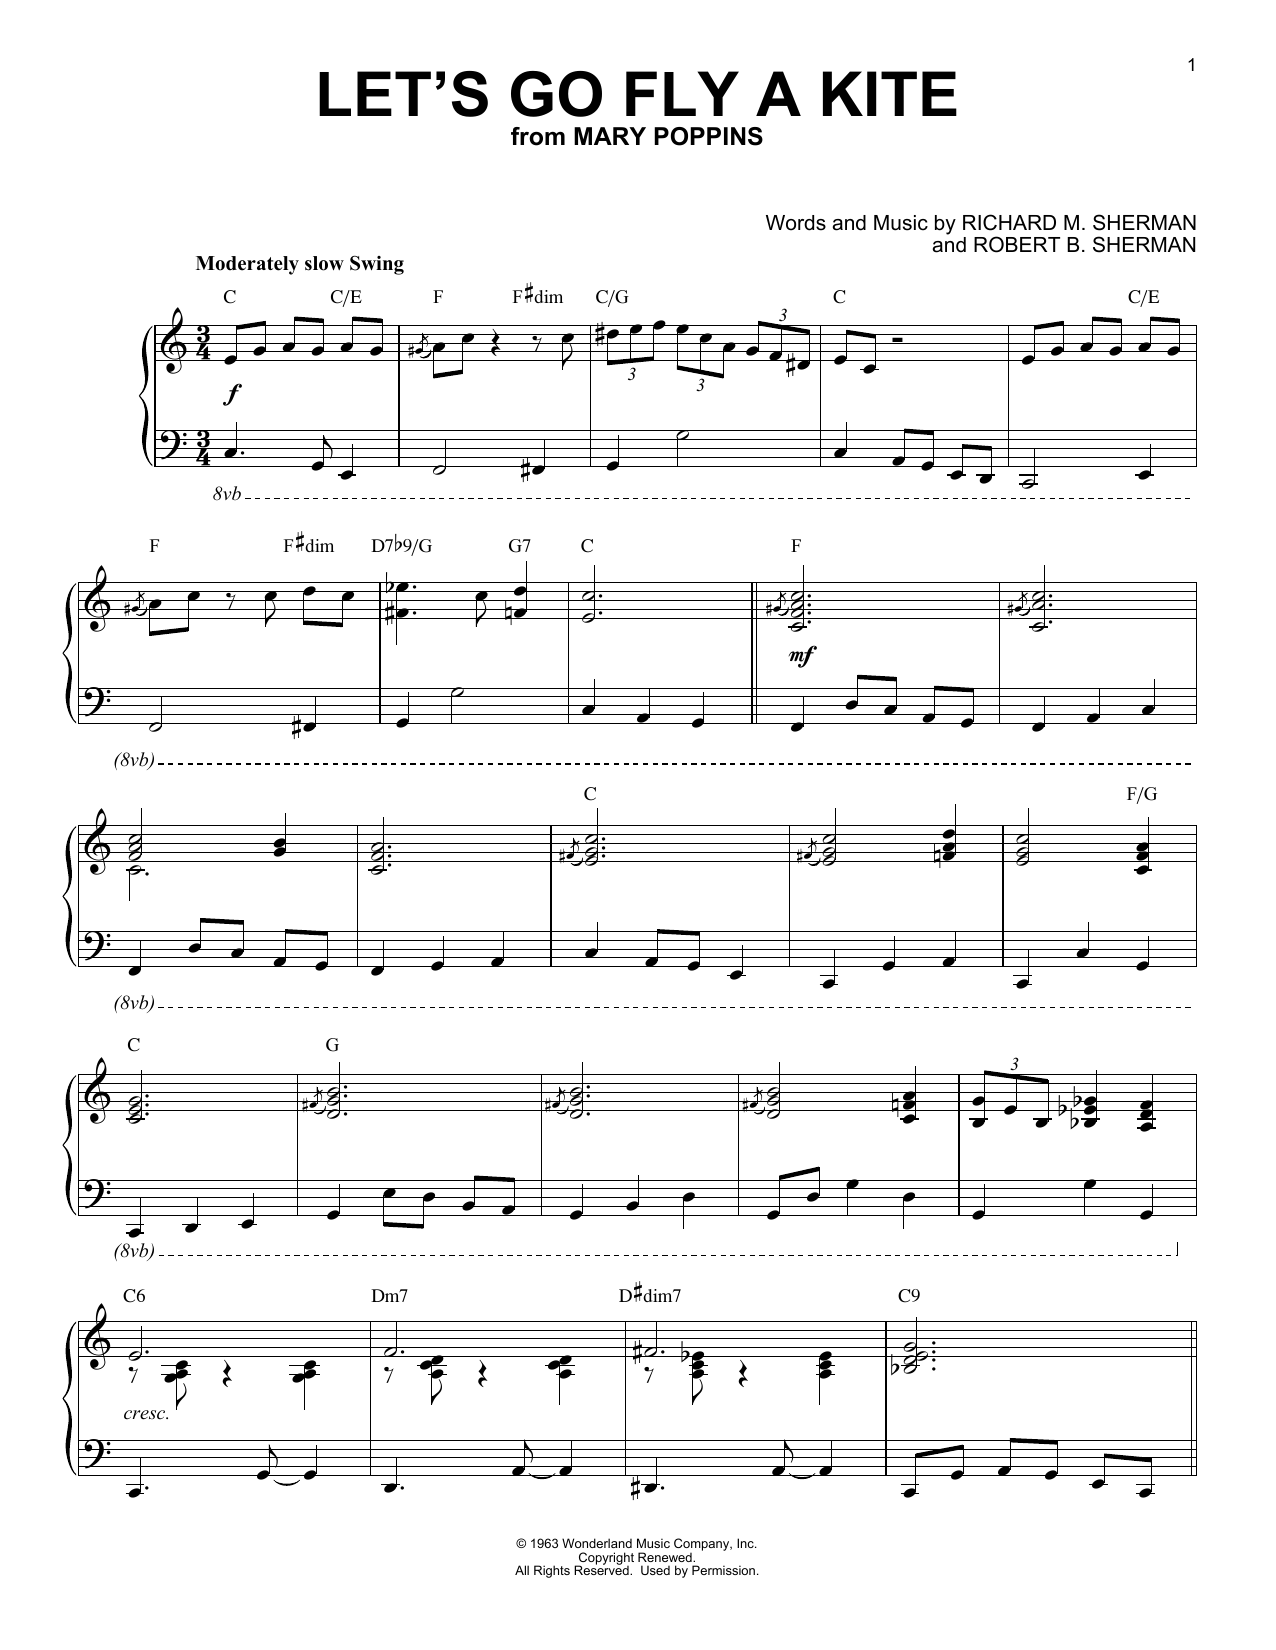 Sherman Brothers Let's Go Fly A Kite [Jazz version] (from Mary Poppins) sheet music notes and chords. Download Printable PDF.